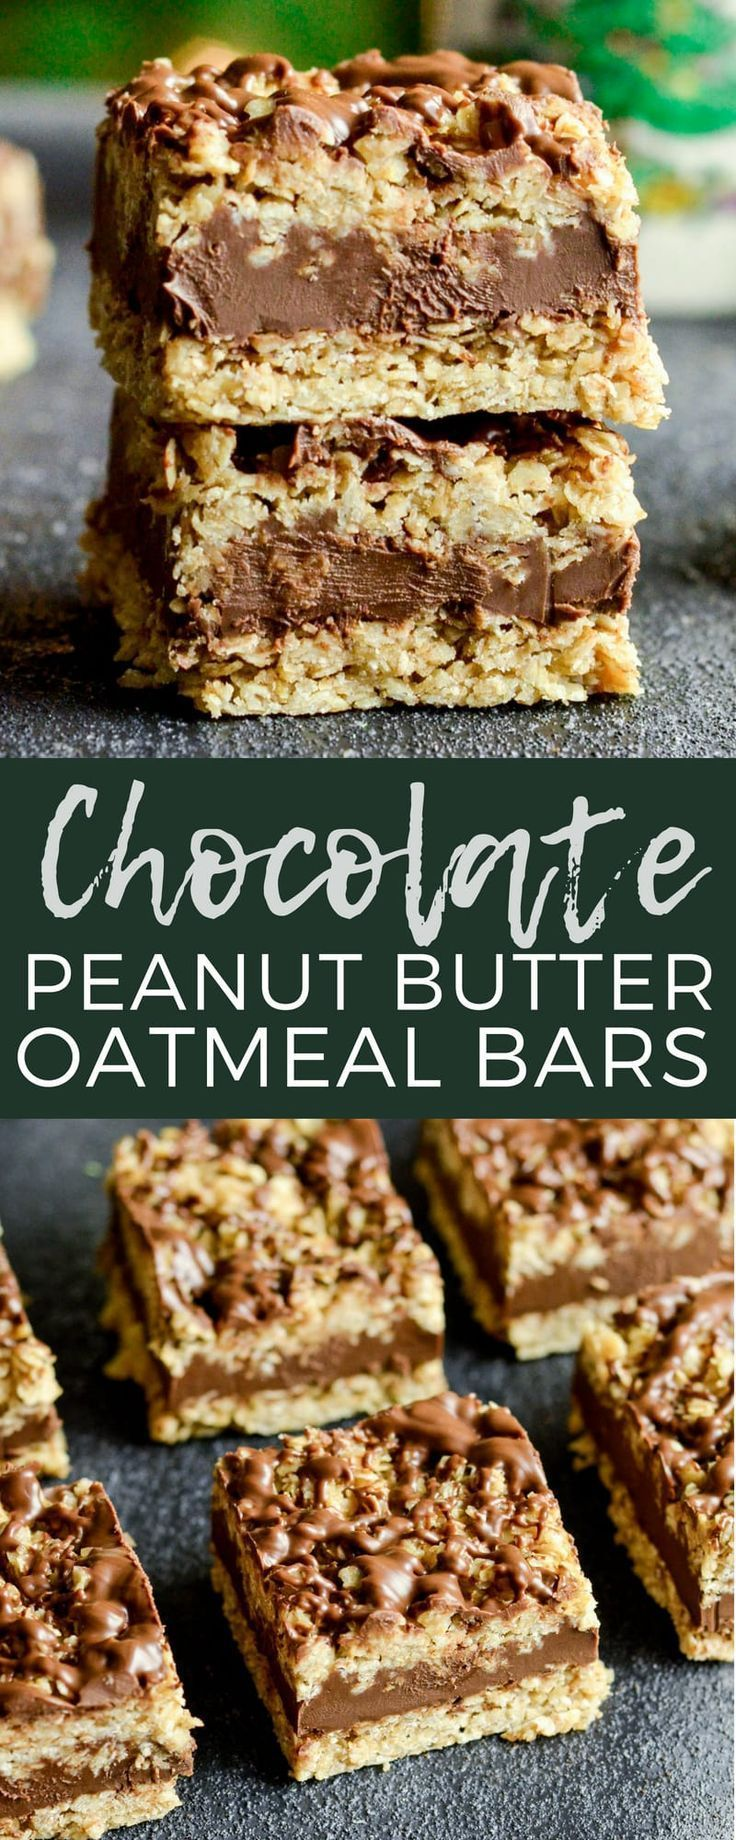 No Bake Chocolate Peanut Butter Oat Bars This Delicious Cookie Recipe Comes Tog Chocolate Peanut Butter Desserts Baking Recipes Cookies Peanut Butter Oat Bars